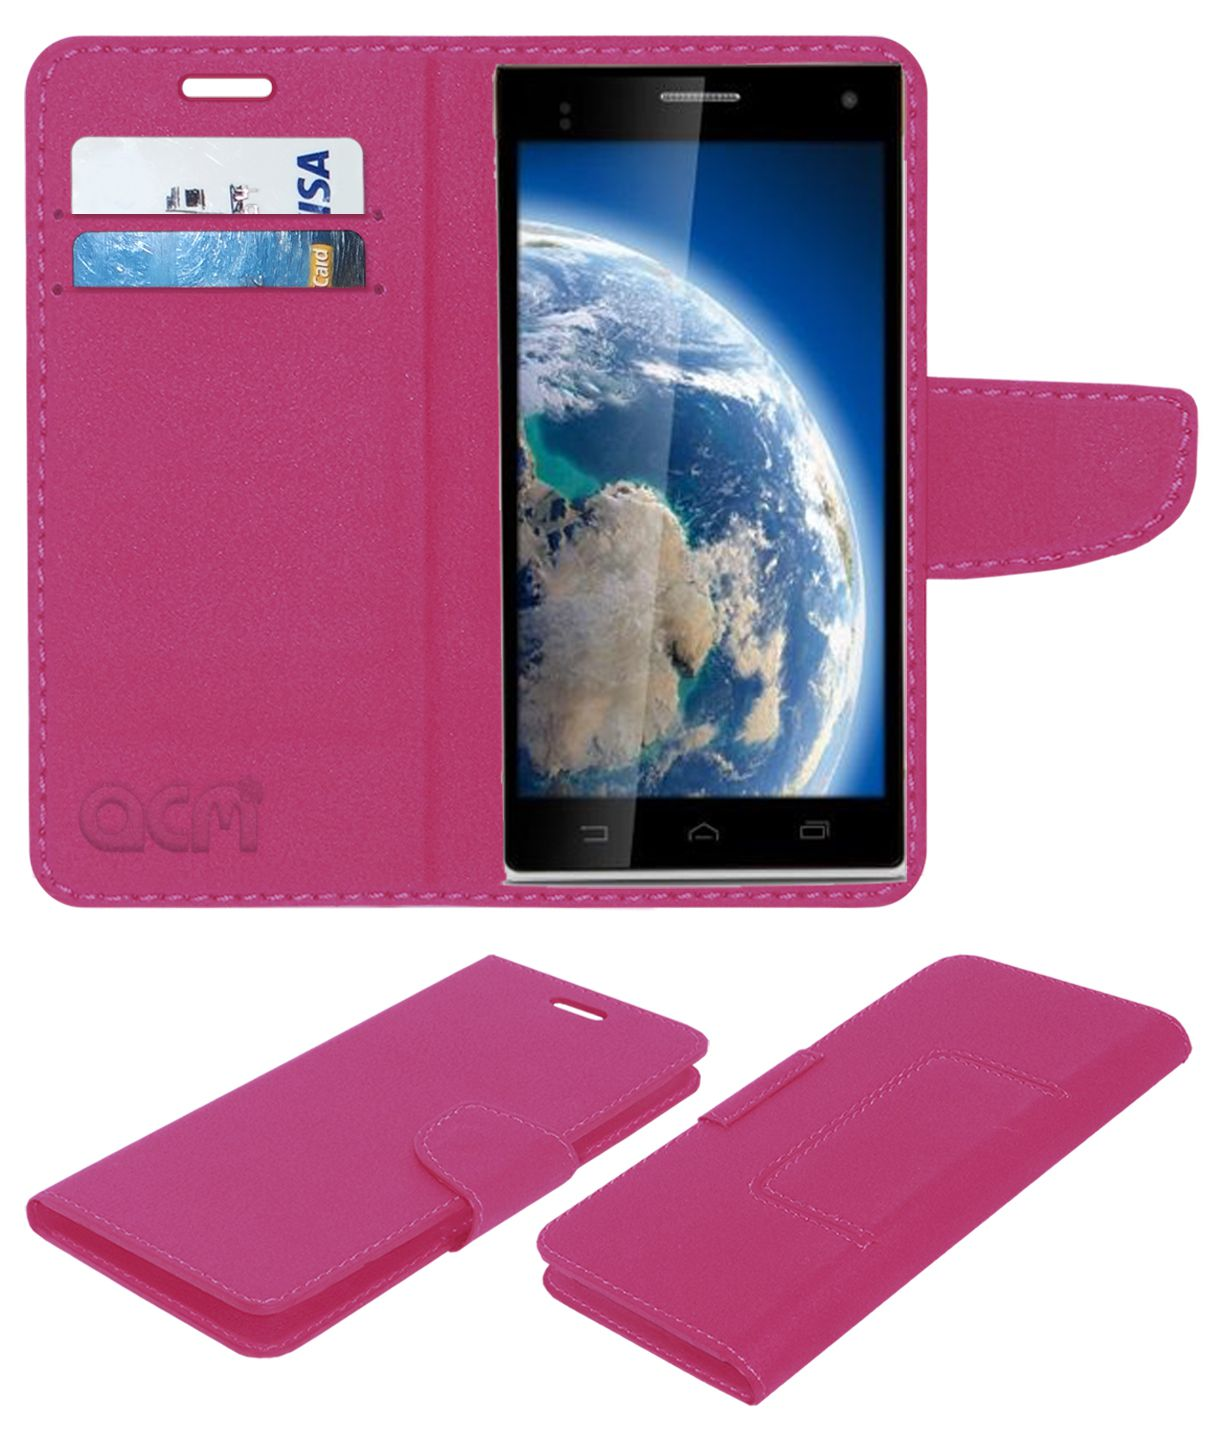 iBall Andi 5 Stallion Flip Cover by ACM - Pink